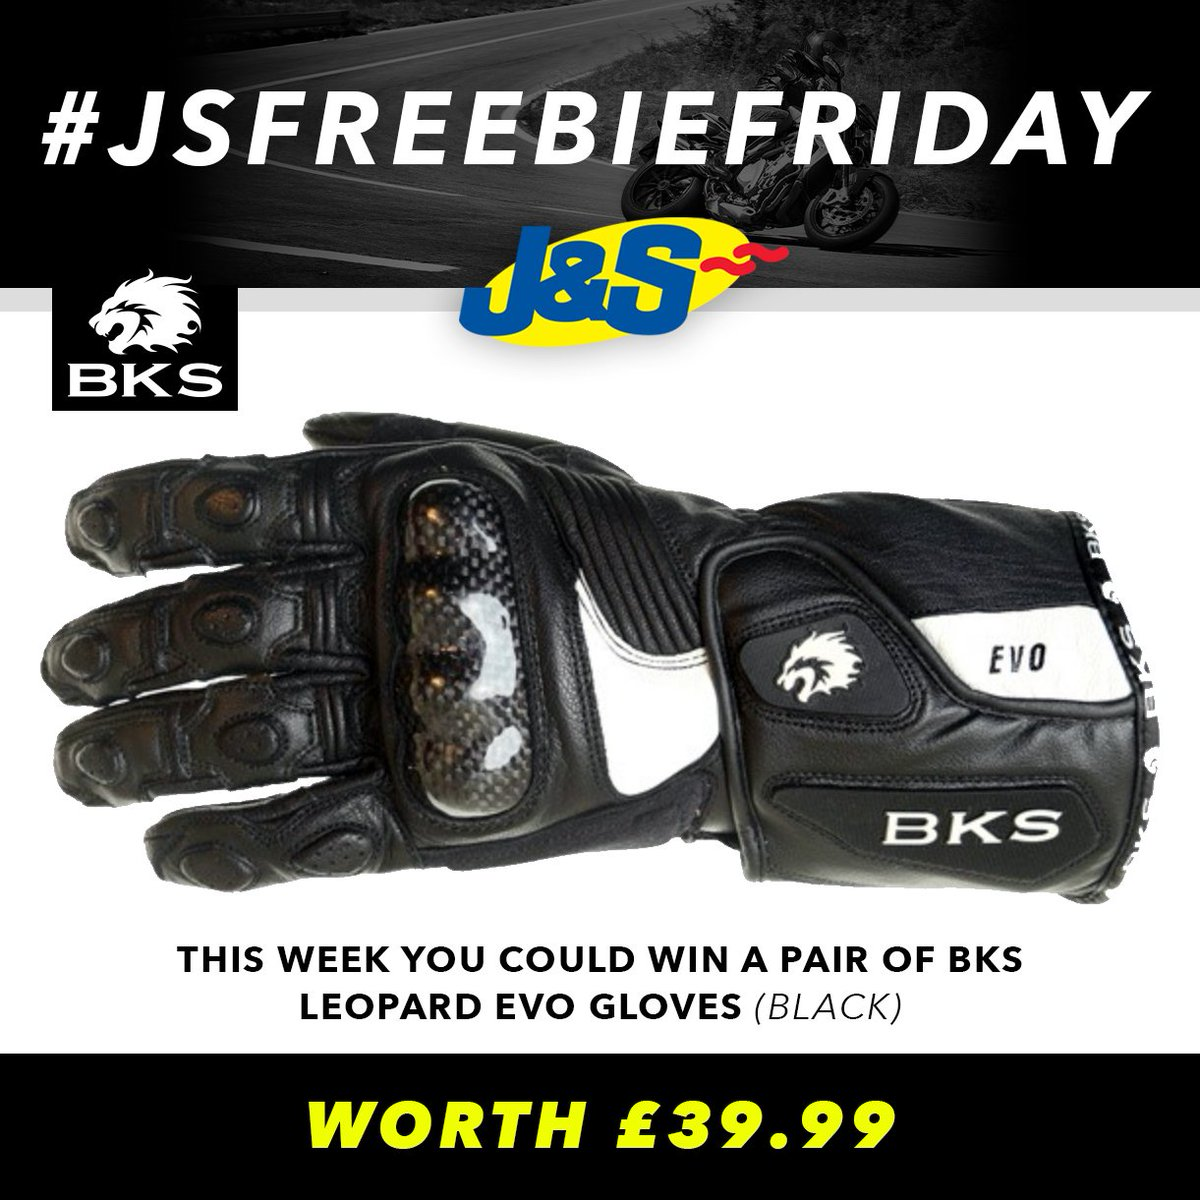 #JSFREEBIEFRIDAY Retweet this post and follow us for a chance to win a pair of BKS Leopard Evo Gloves worth £39.99. Ends Tues August 7th. You can also enter by signing up to our newsletter here:  Happy Friday everyone!